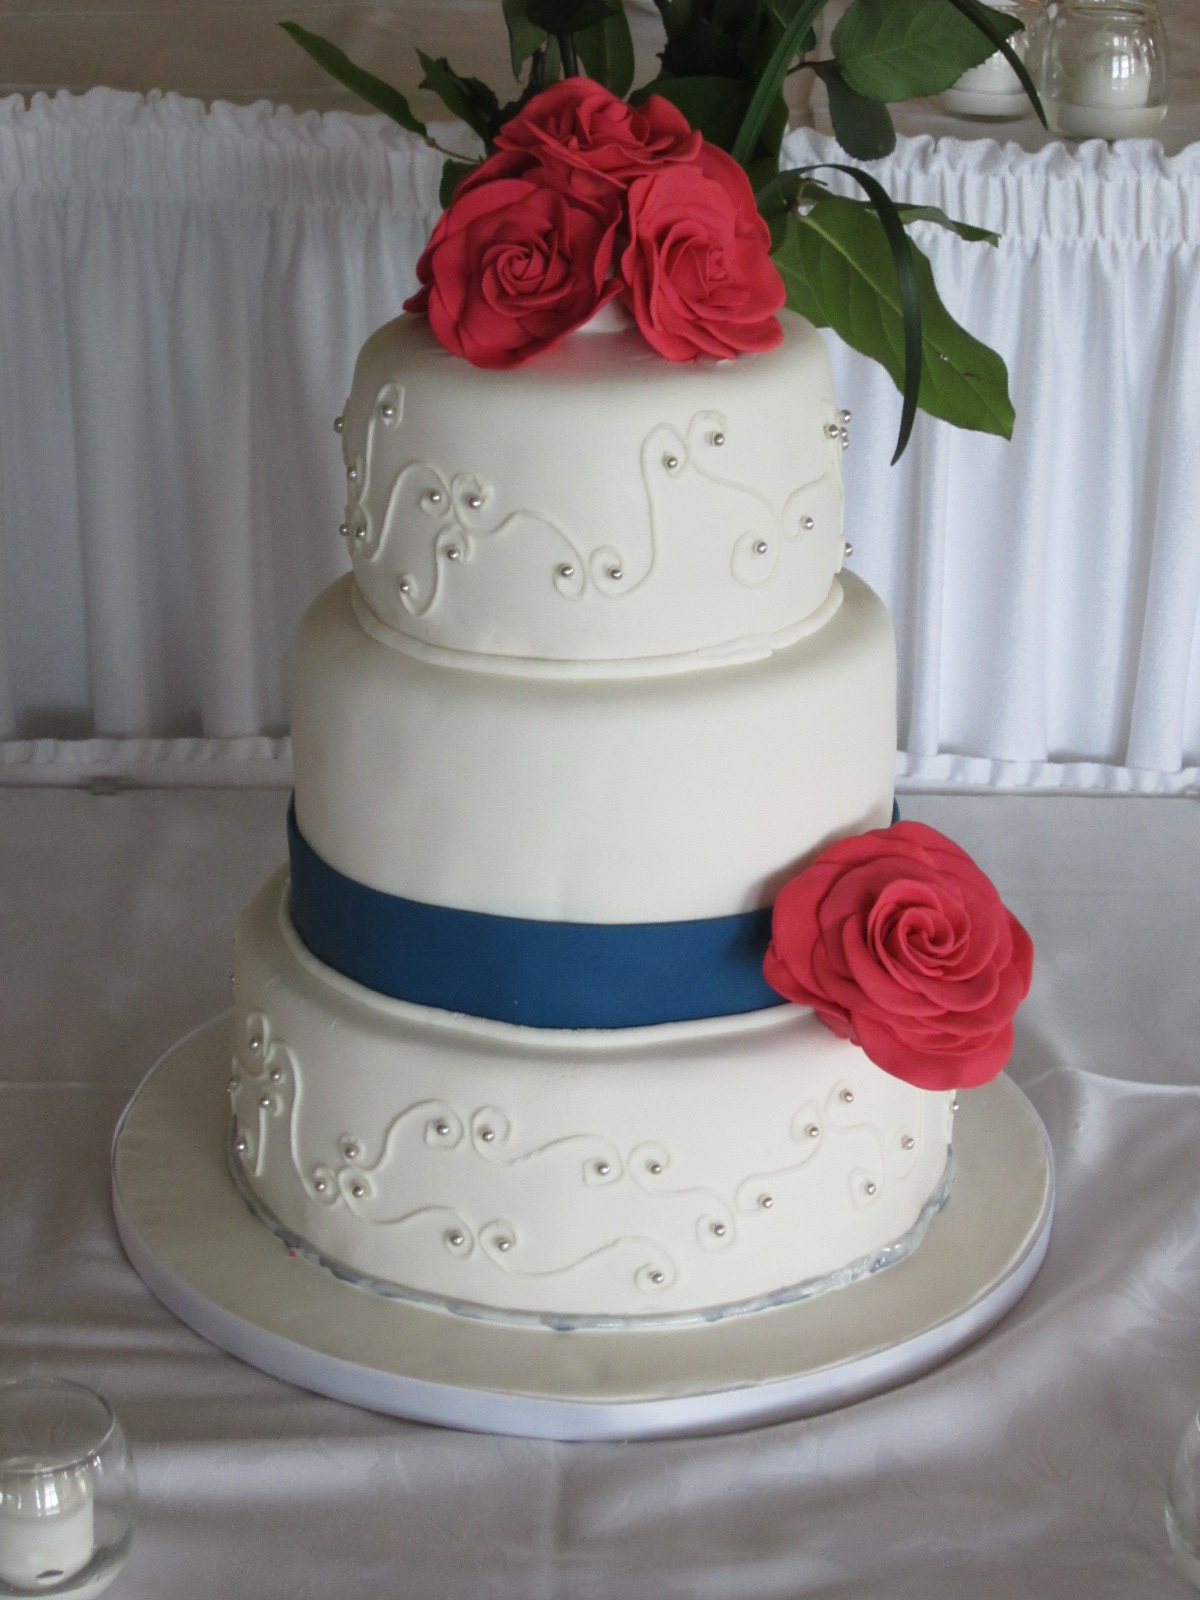 9 Red Roses With Blue And White Wedding Cakes Photo Red And Blue